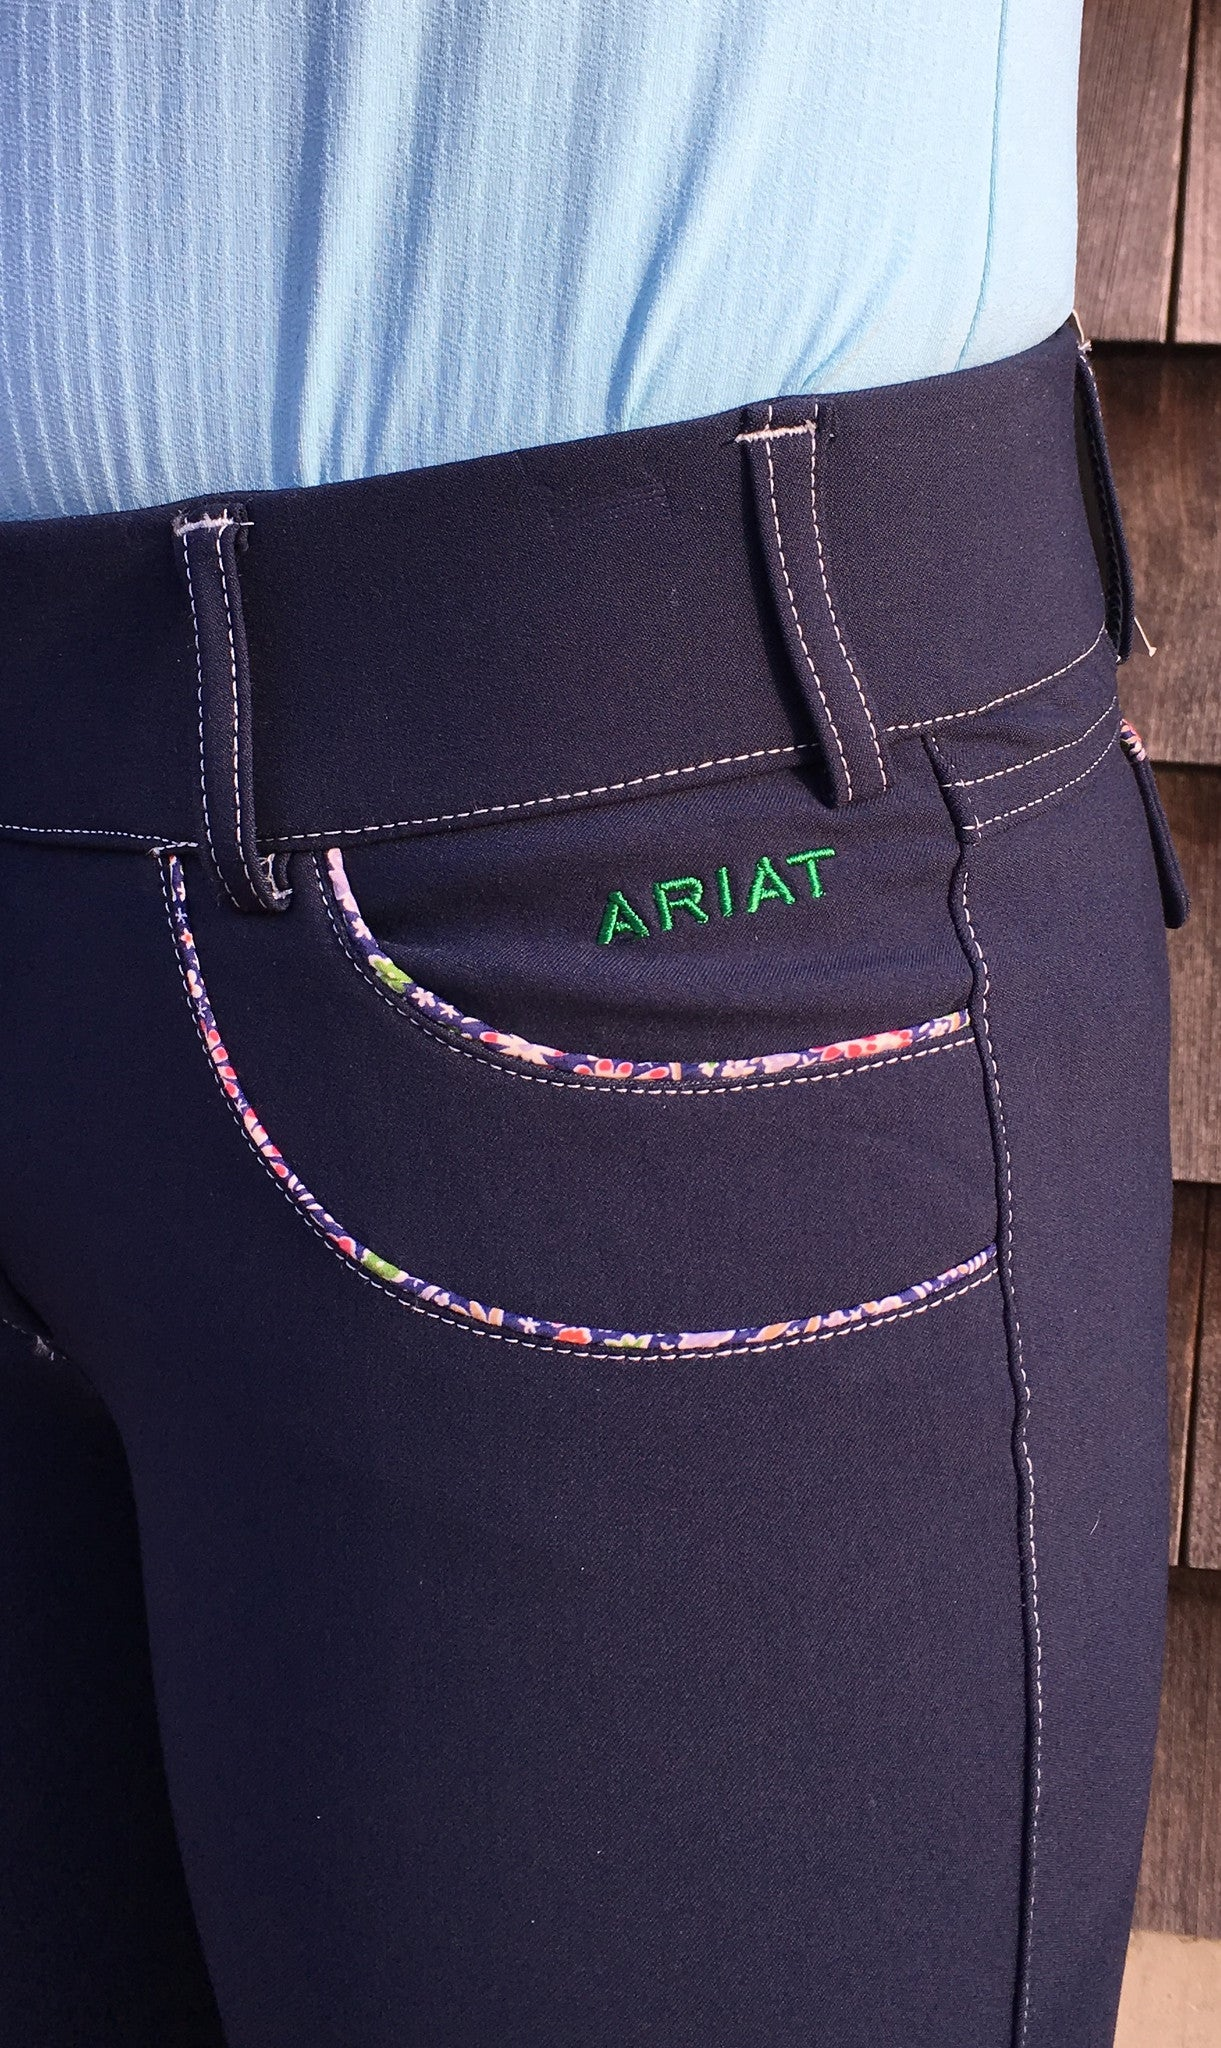 Ariat Olympia Acclaim LR KP Breech